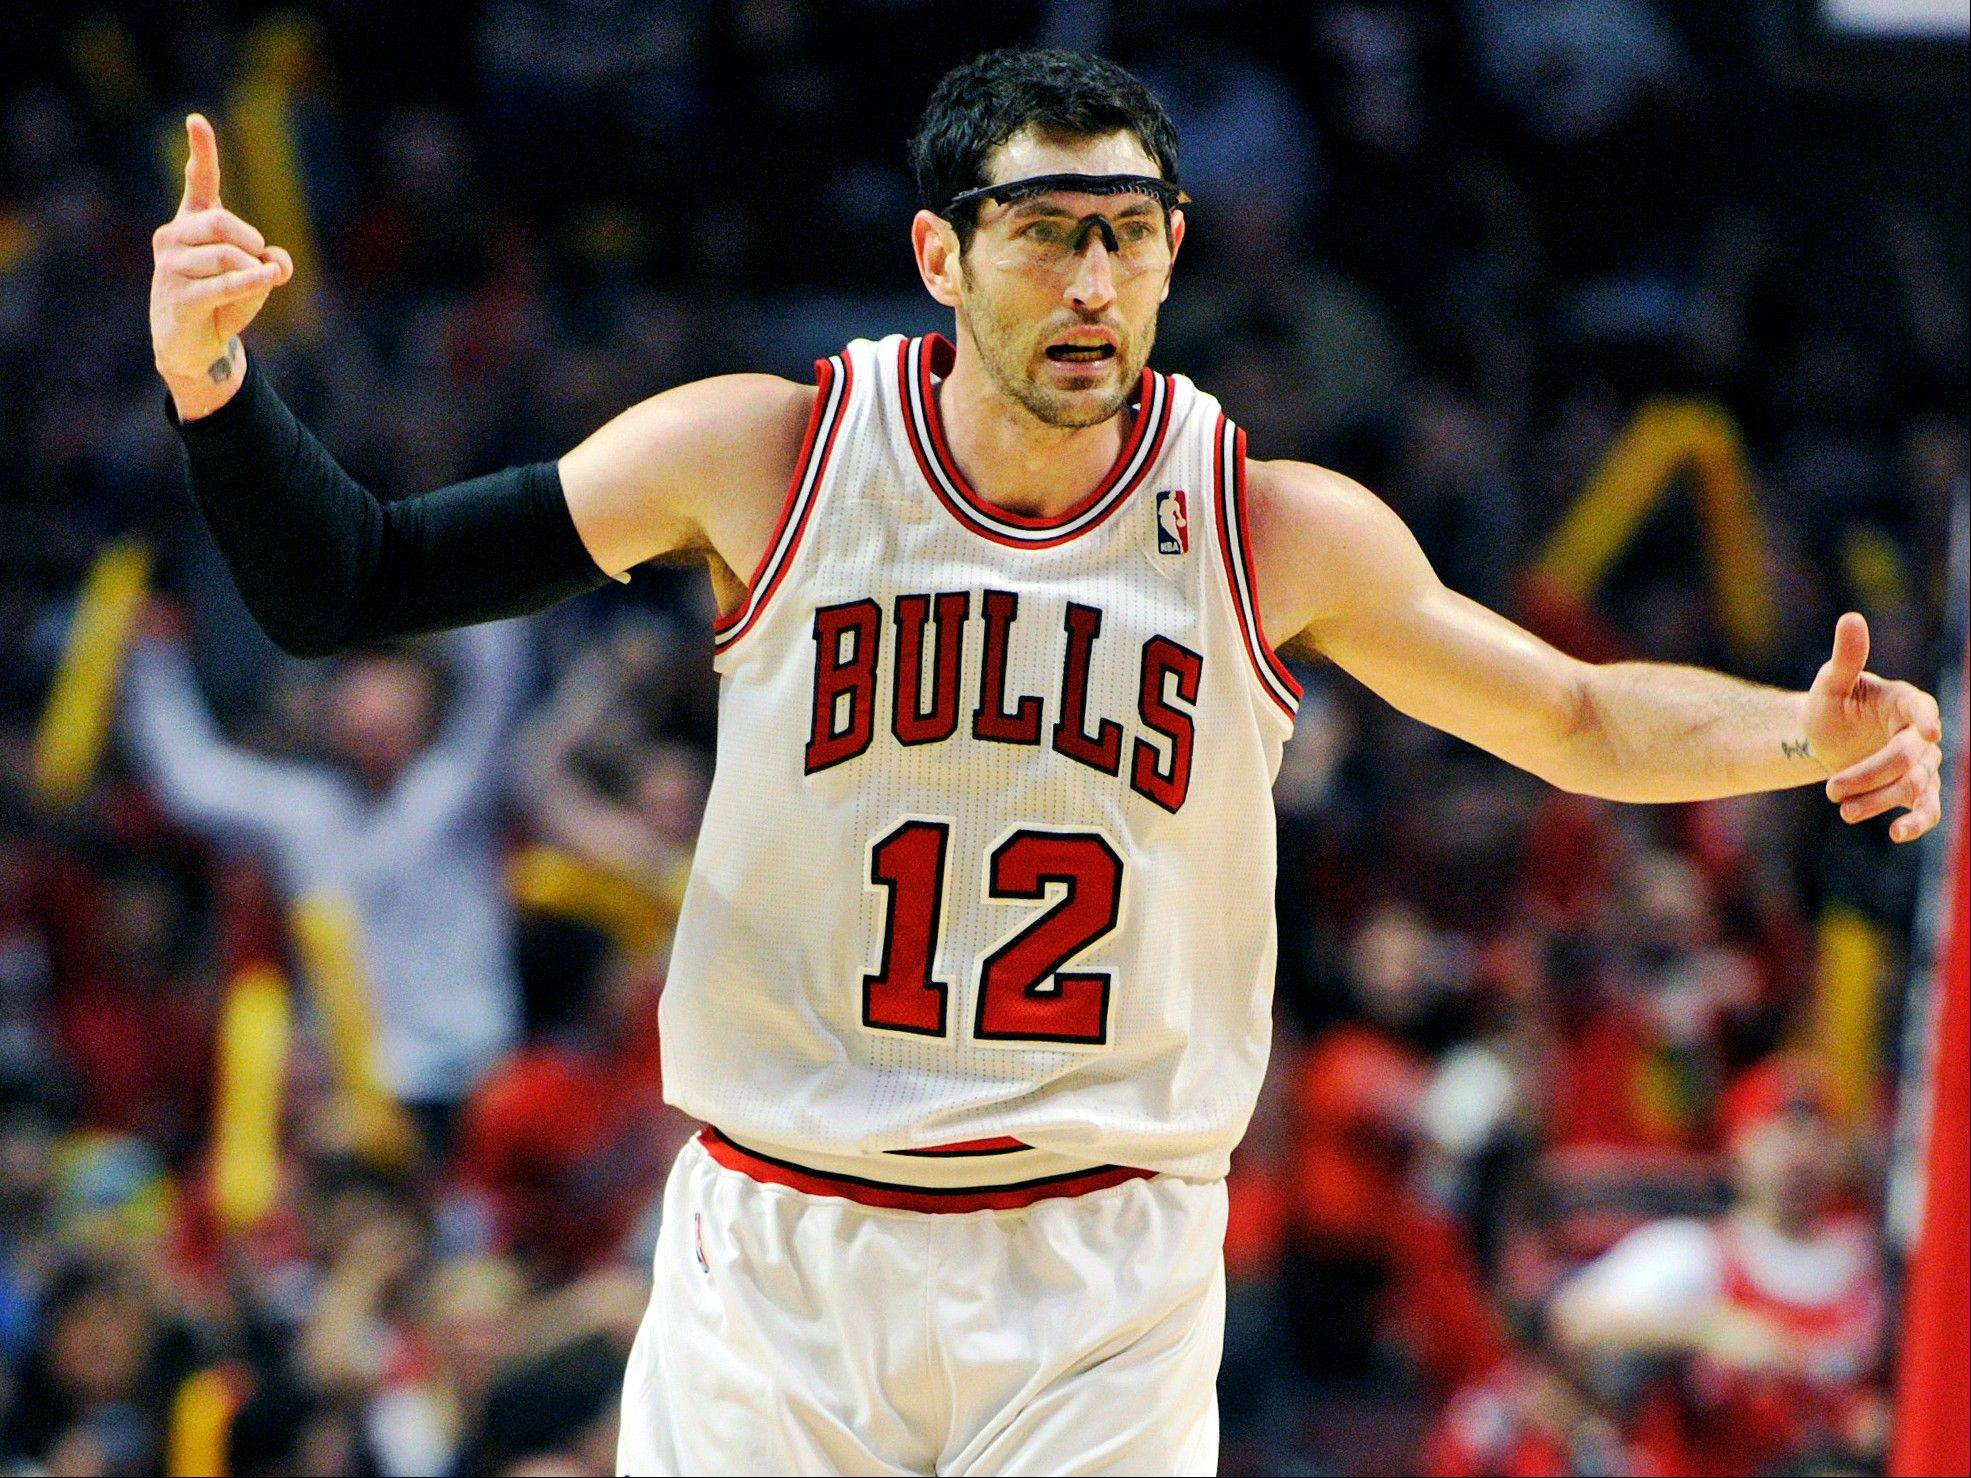 Bulls guard Kirk Hinrich, suffering from a bruised left calf, is hoping he can play in Thursday's Game 6 against the Brooklyn Nets.